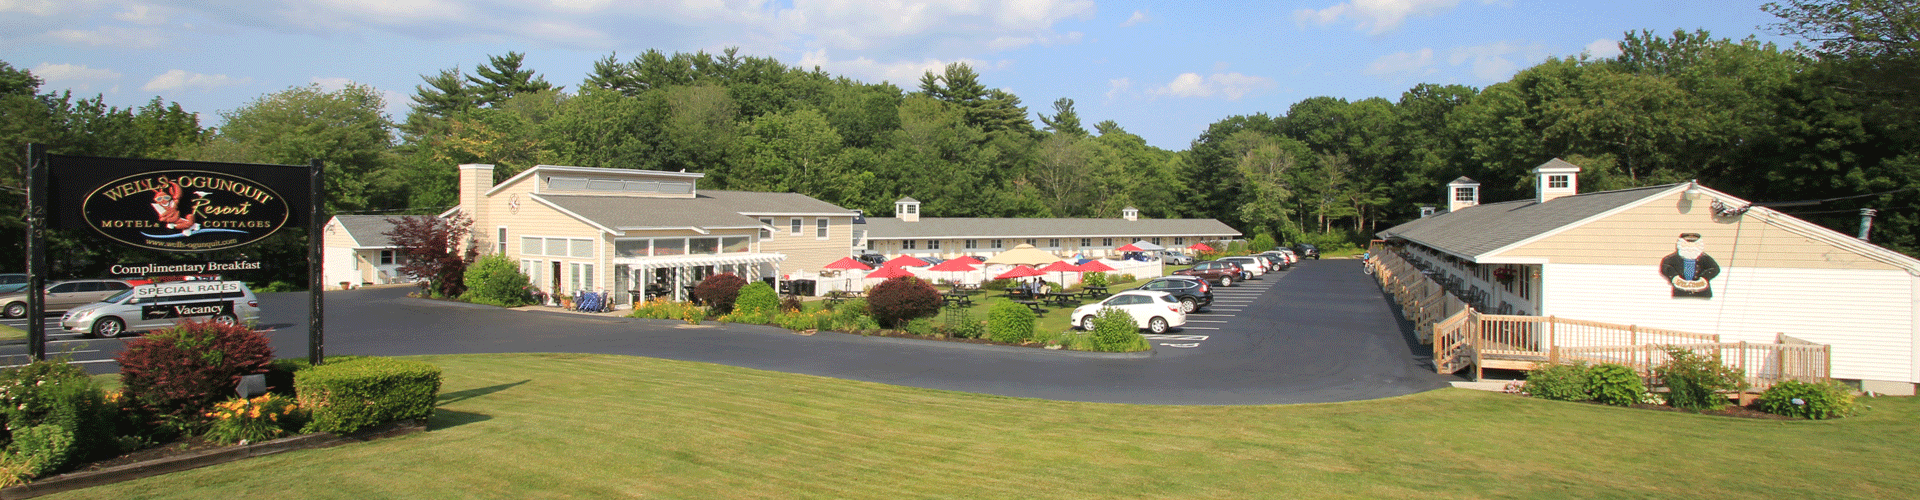 Wells Maine Bed and Breakfast Inns Hotels Motels - Wells Ogunquit Resort Motel